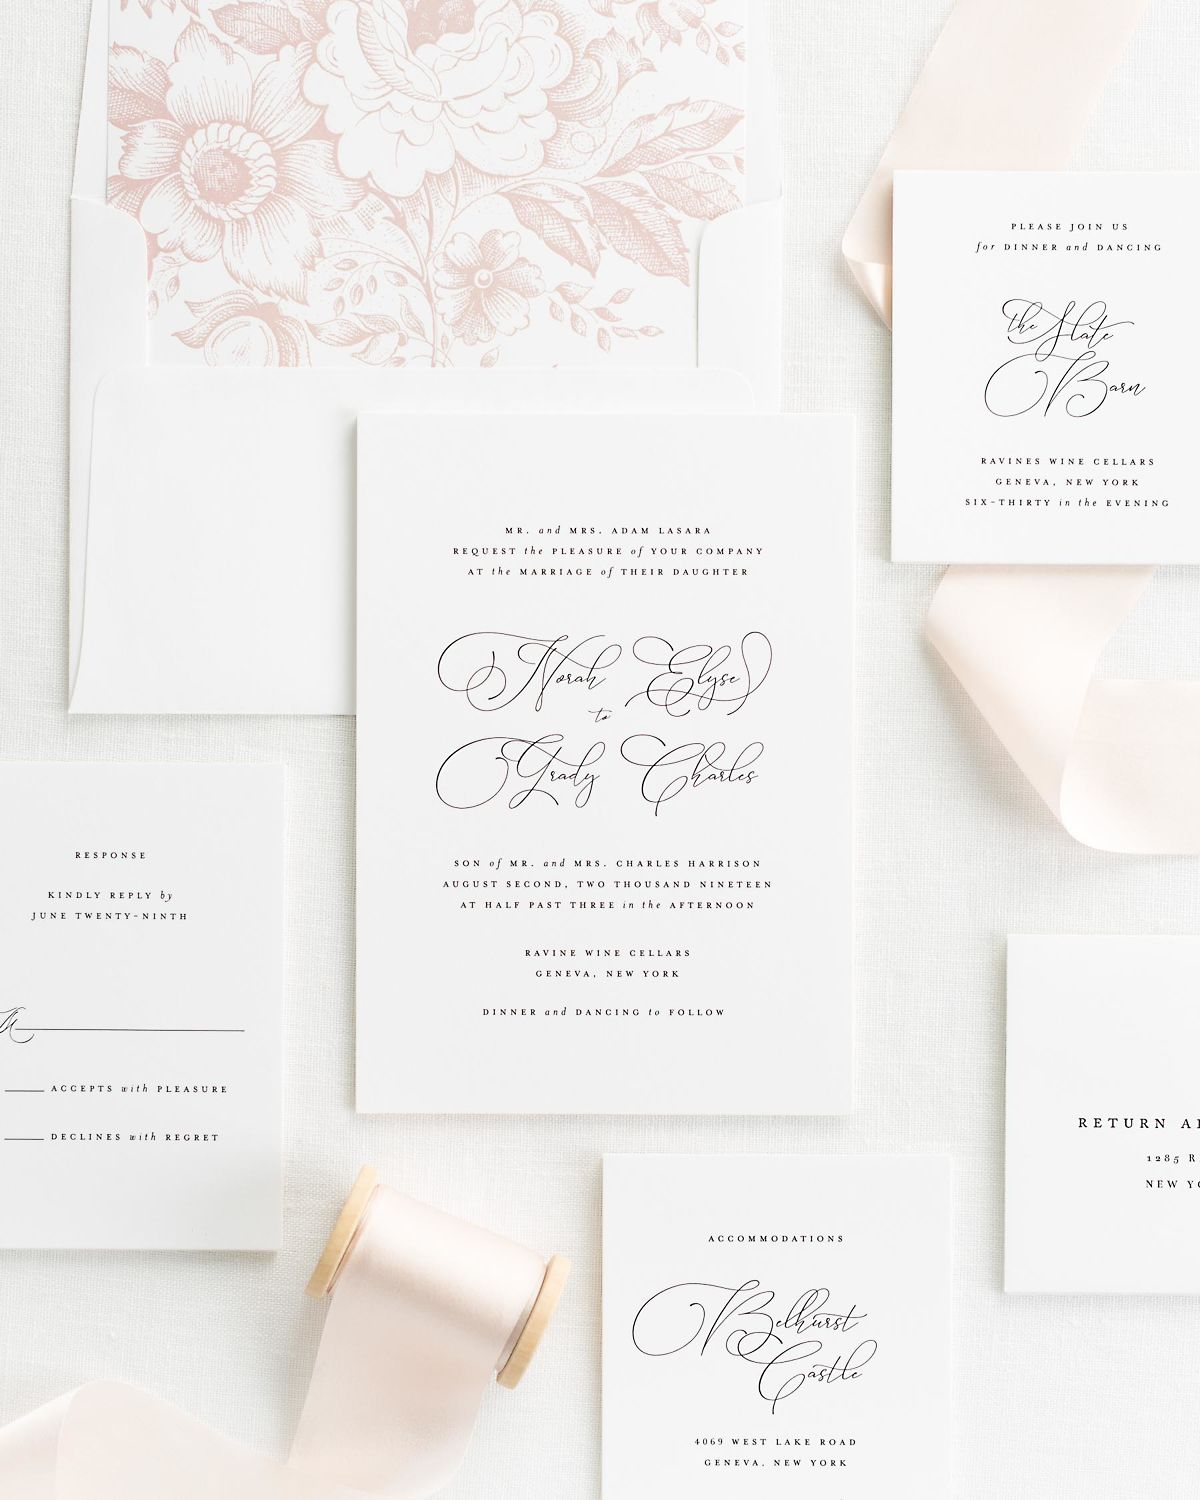 blush ribbon wedding invitations with a rose quartz floral envelope liner